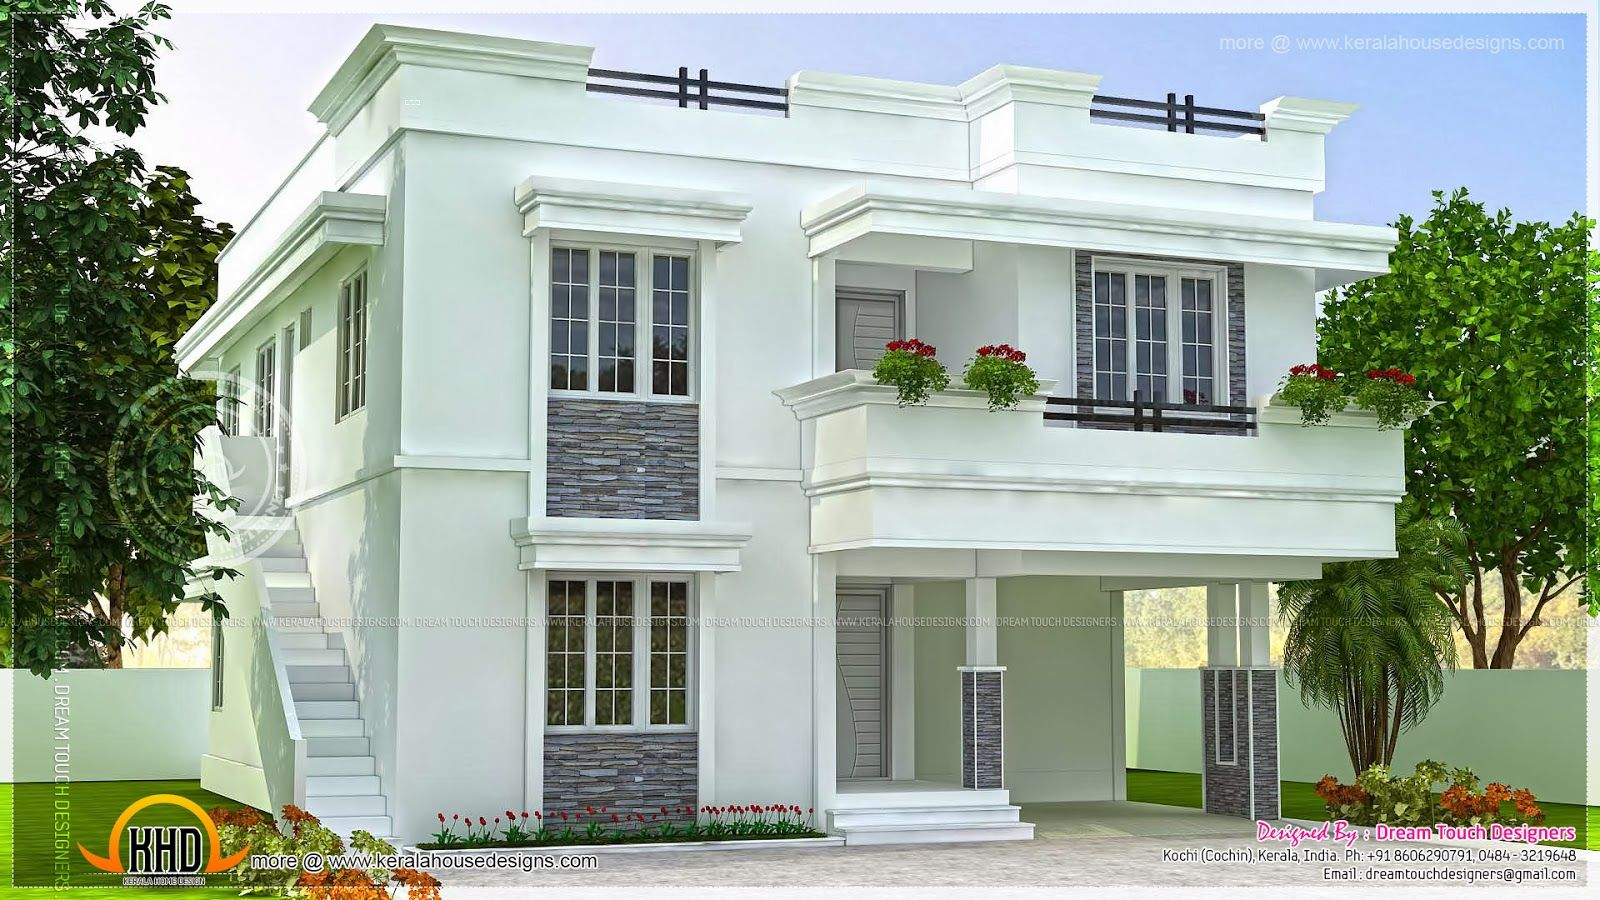 Modern beautiful home modern beautiful home design indian for Kerala home designs contemporary